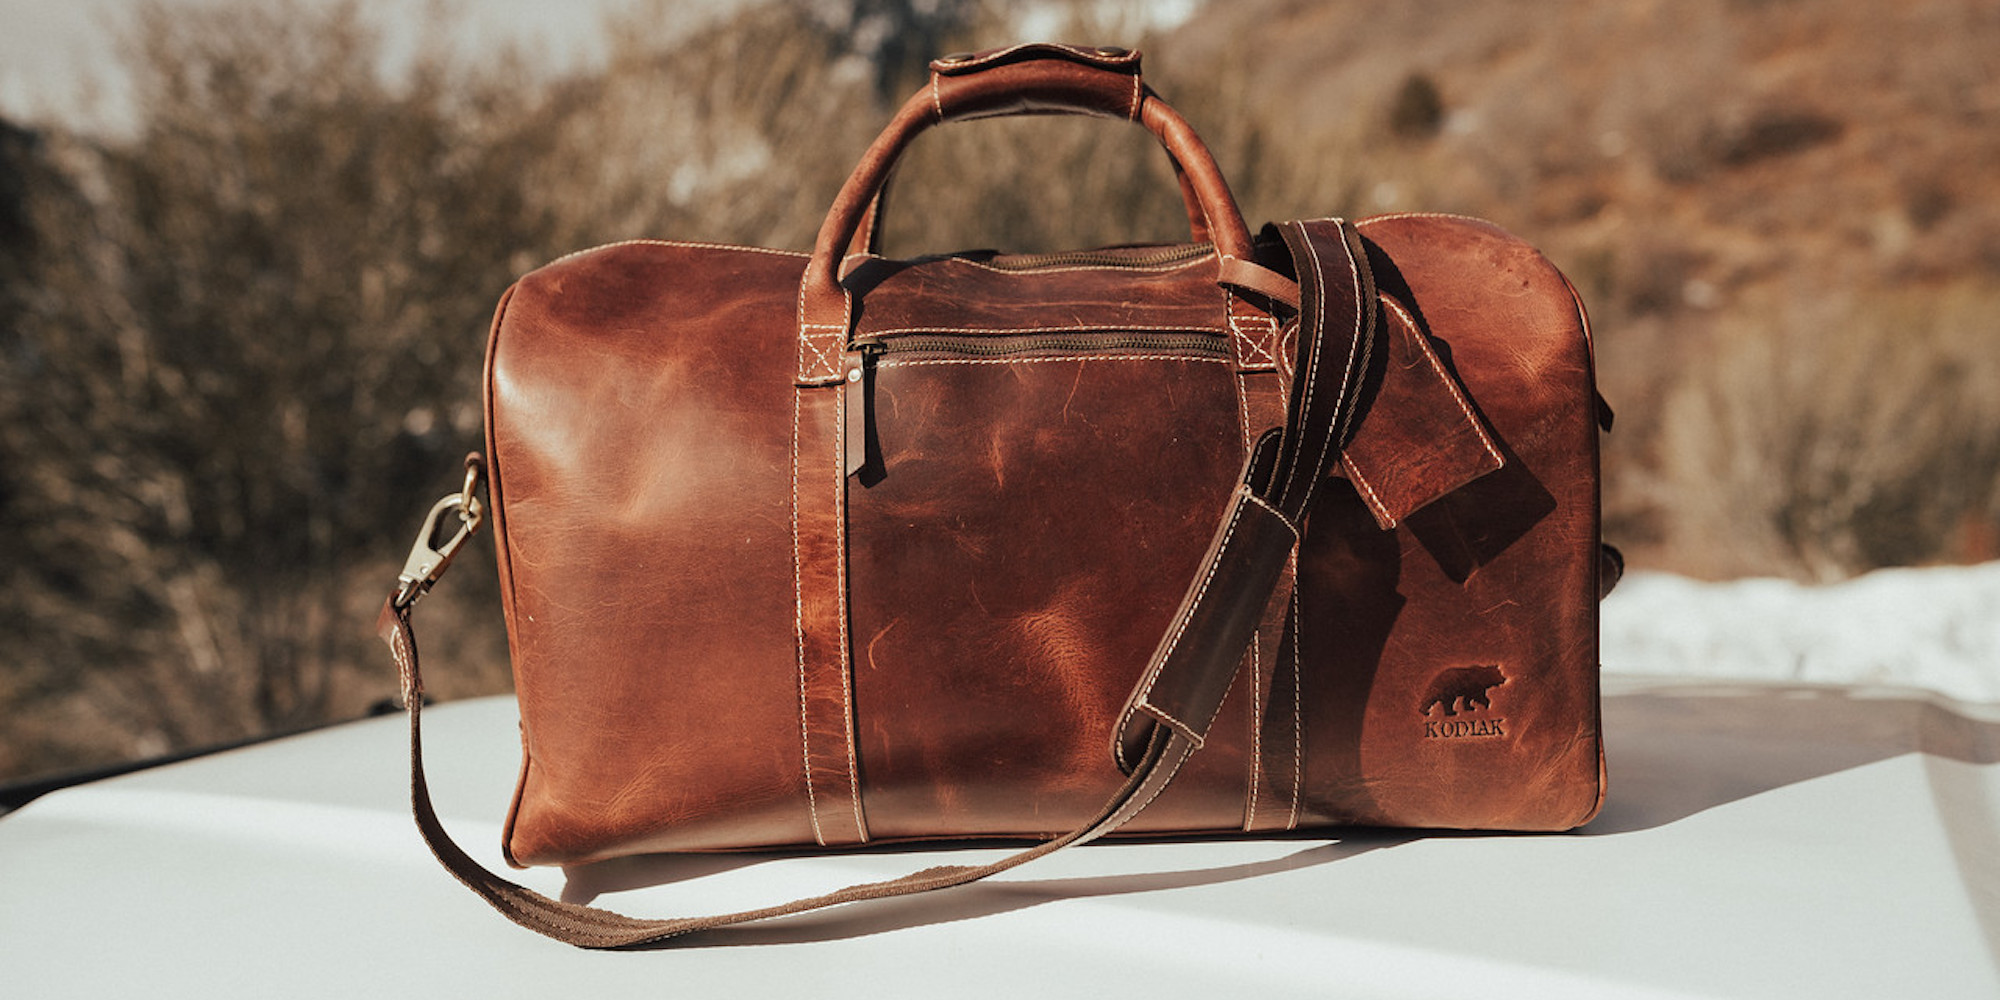 Travel in style with the Kodiak Leather Duffle Bag starting at $127